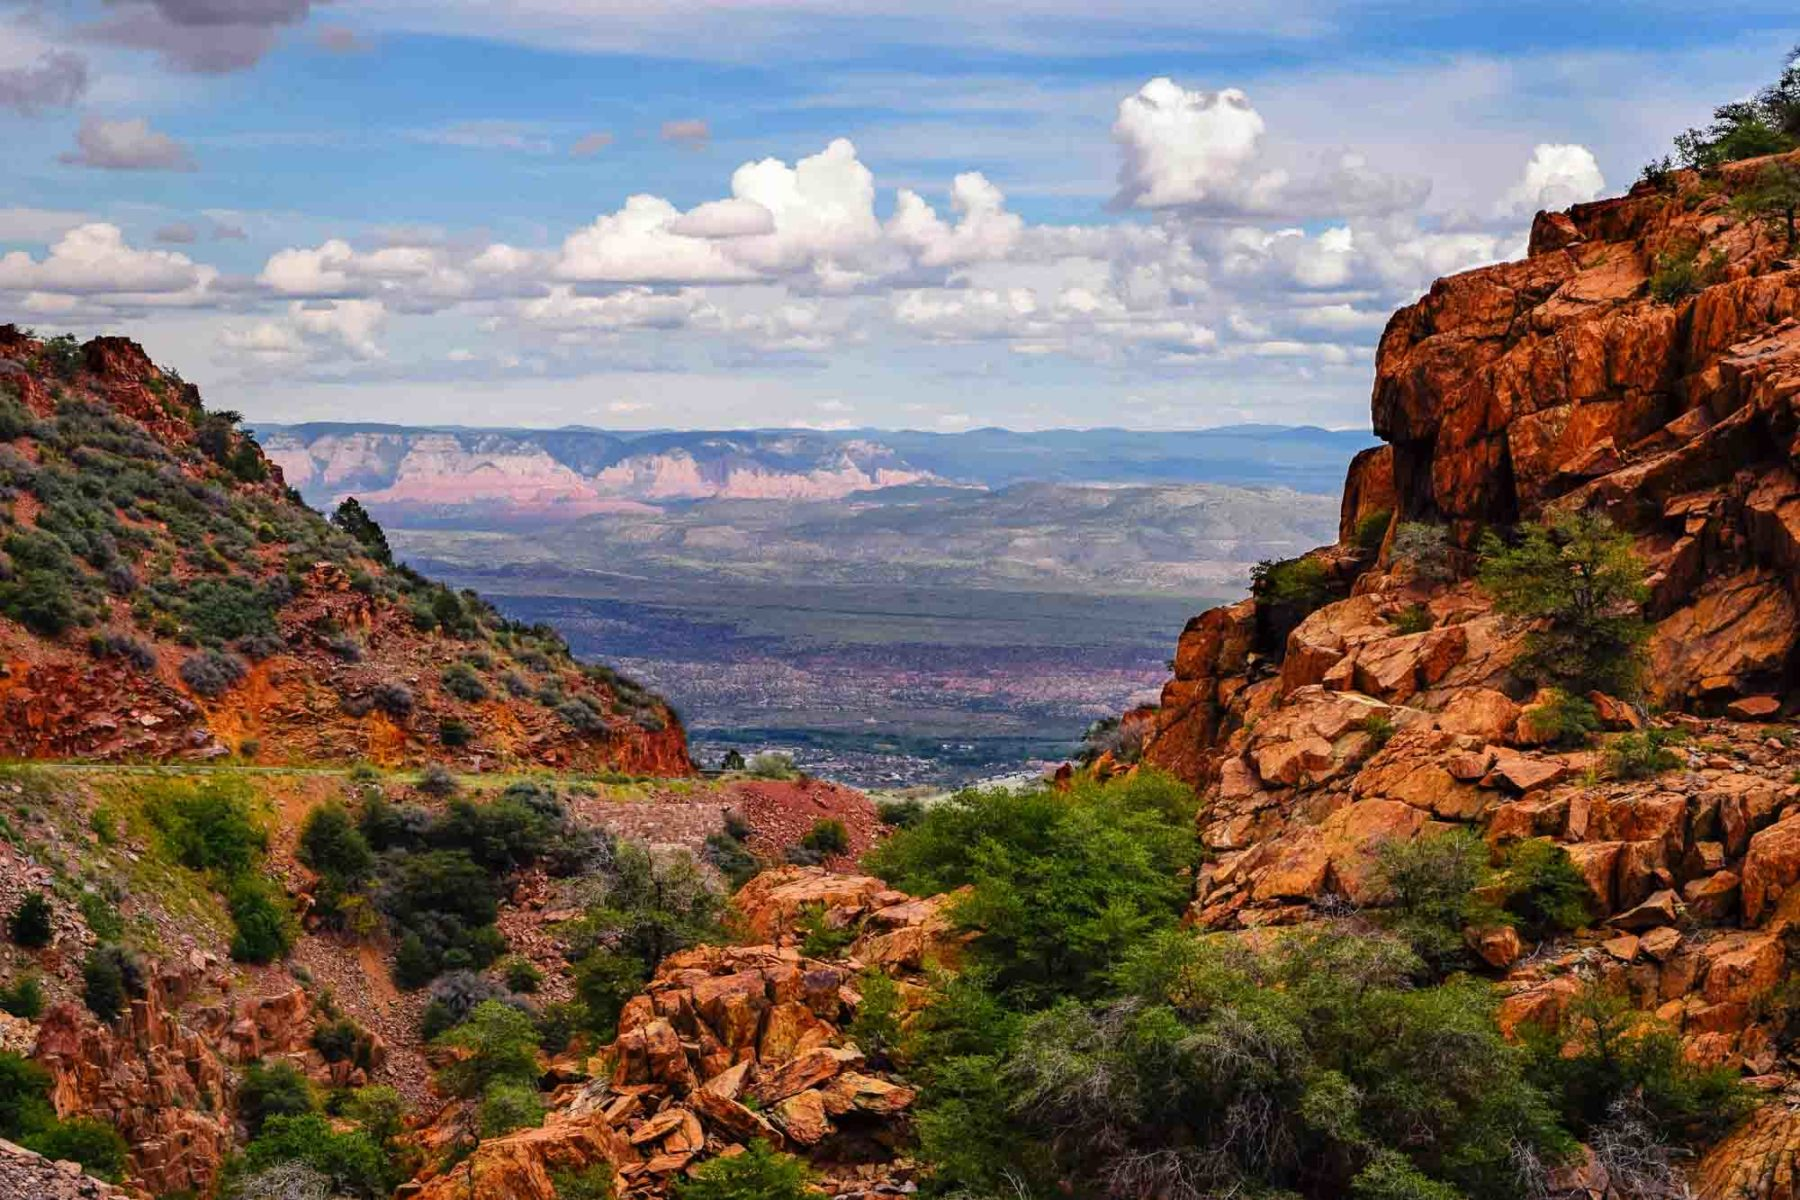 Arizona landscape featuring canyons and a rocky terrain